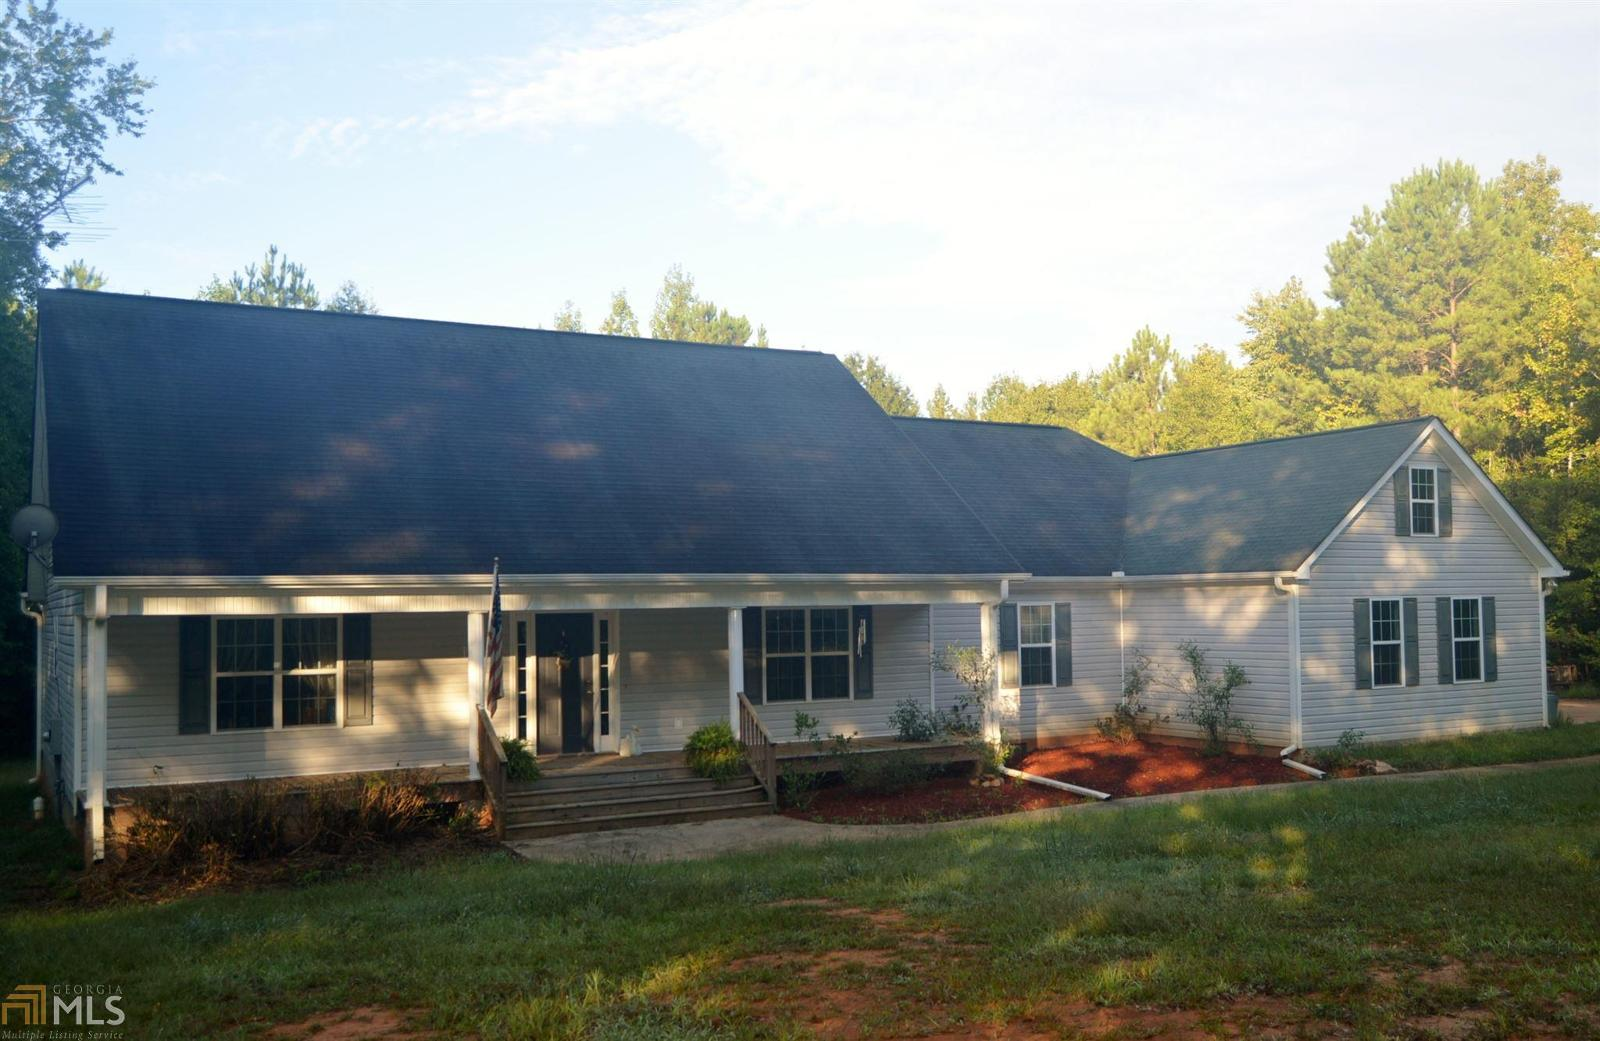 19608 highway 18 zebulon ga mls 08044861 coldwell